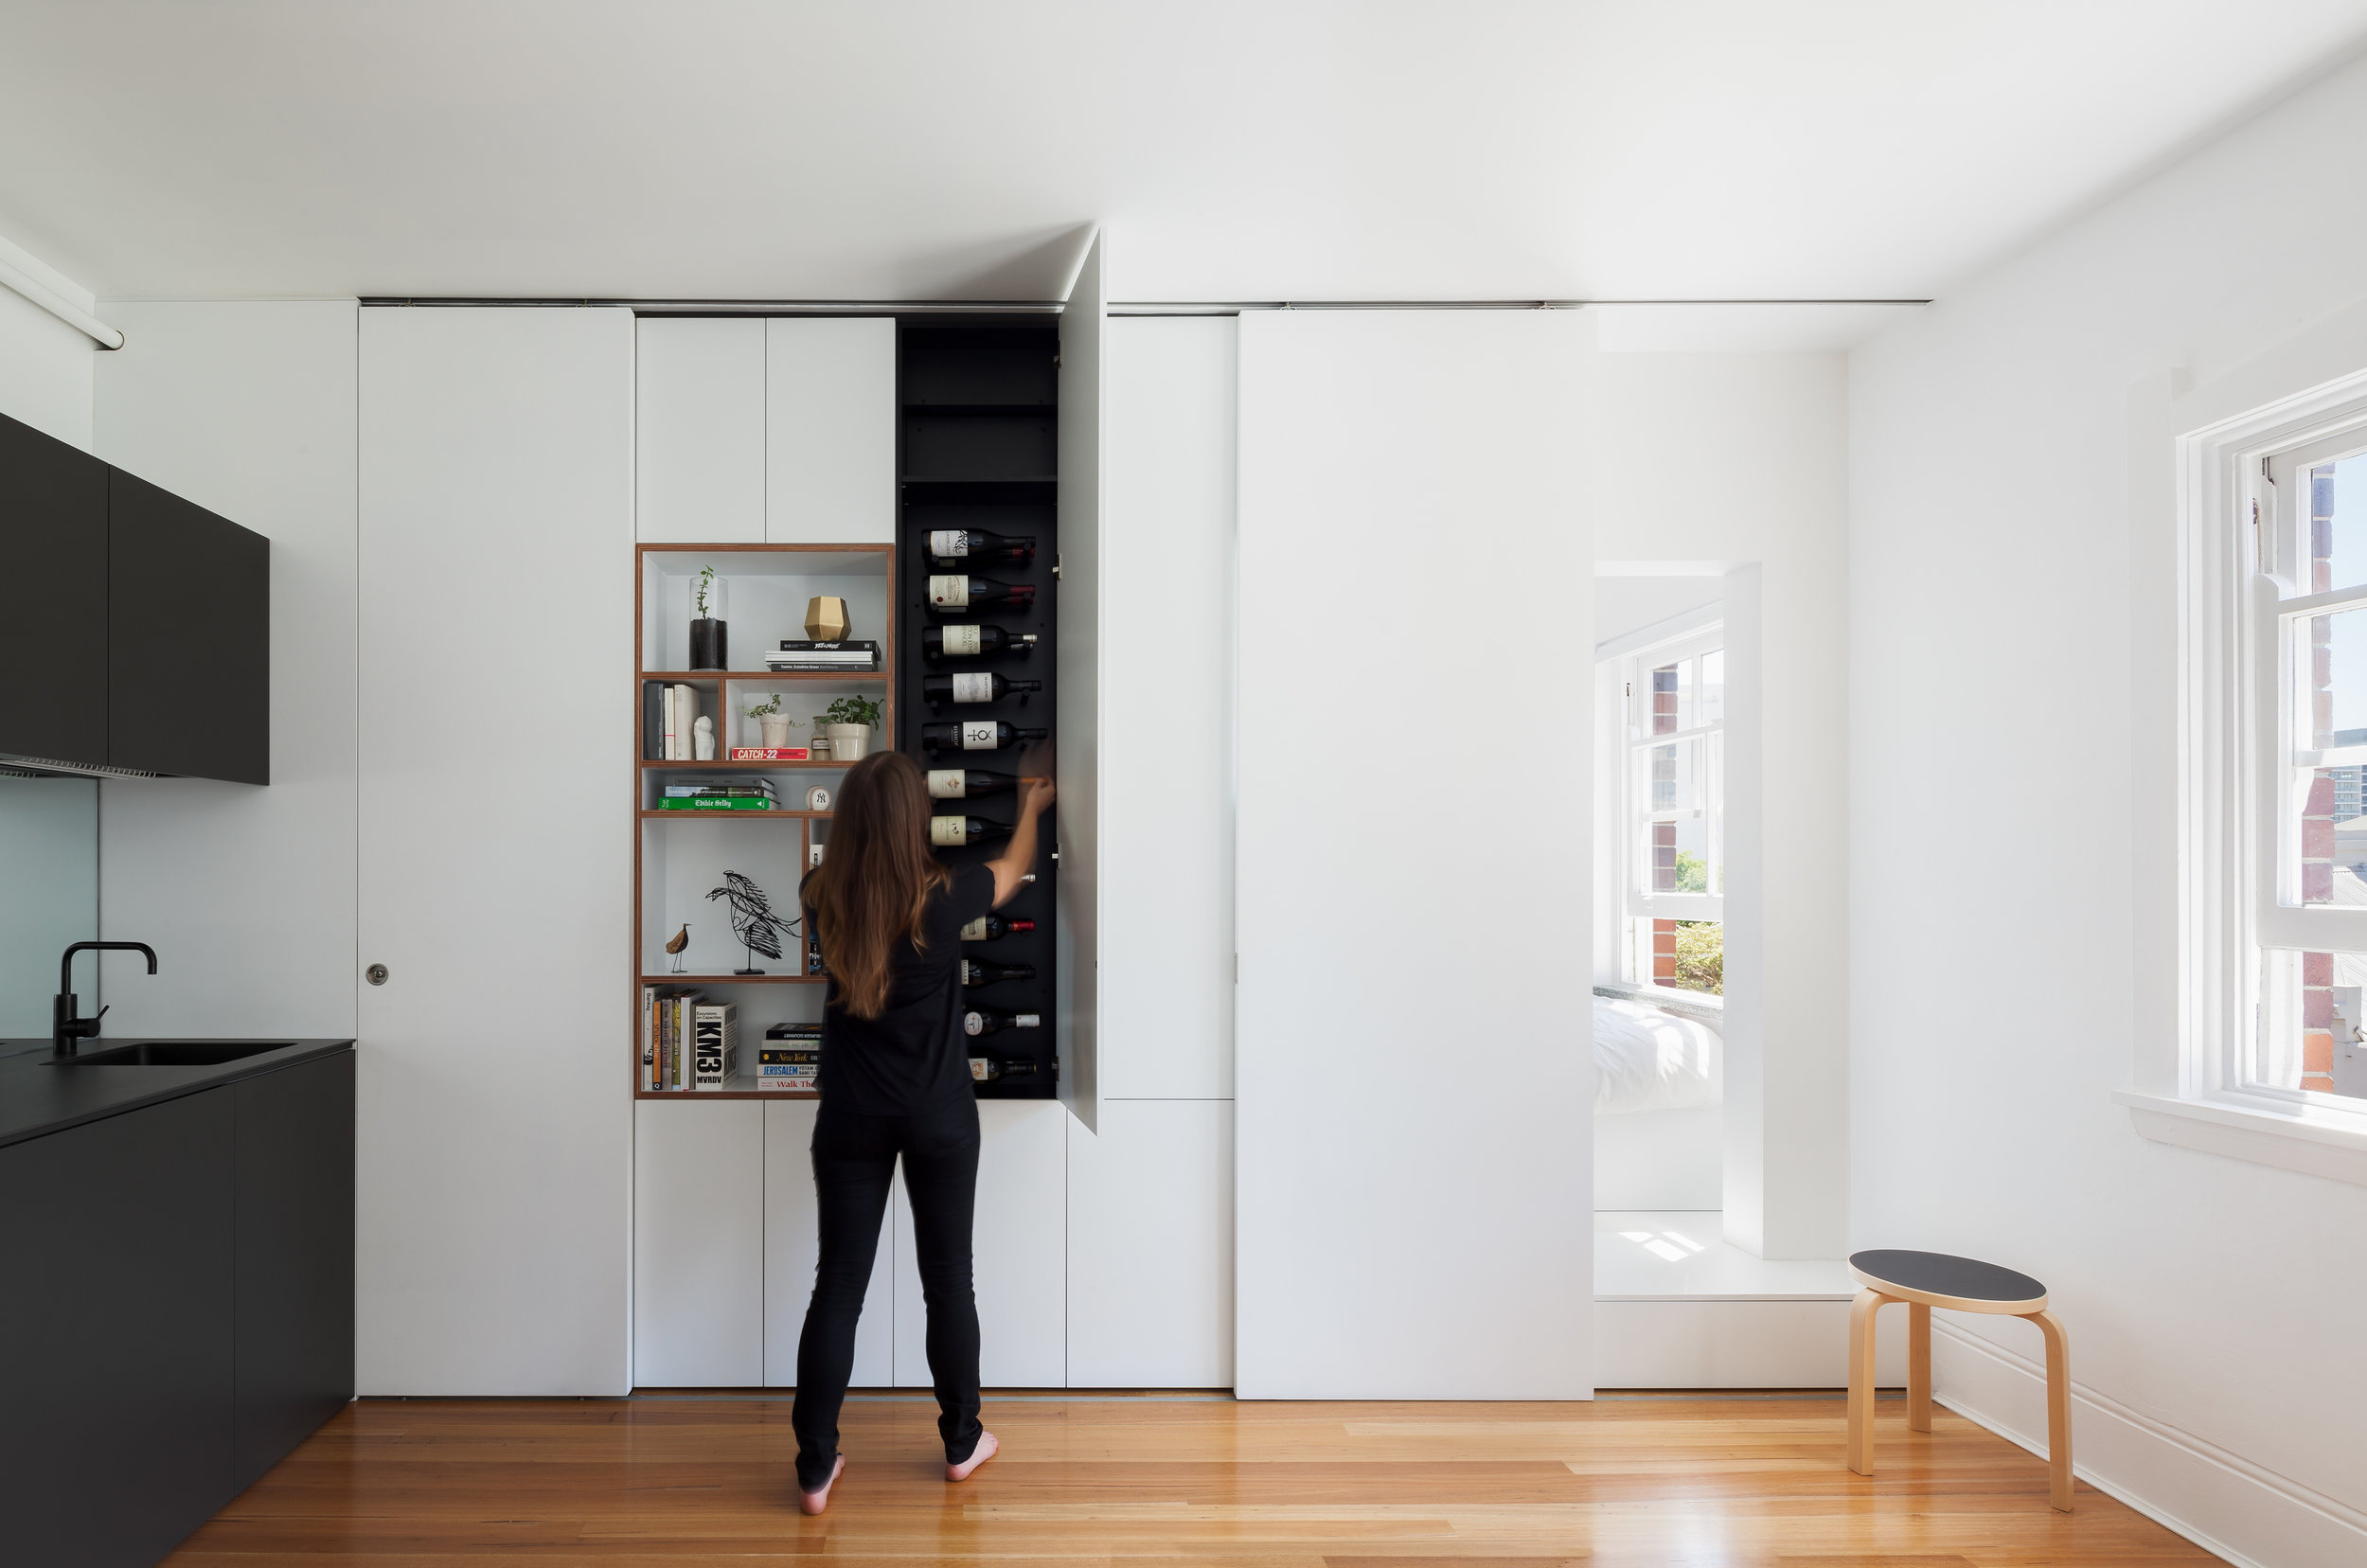 Small is not about compromise, even a 27 square metre apartment can accommodate wine storage if you think creatively. Photo by Katherine Lu.